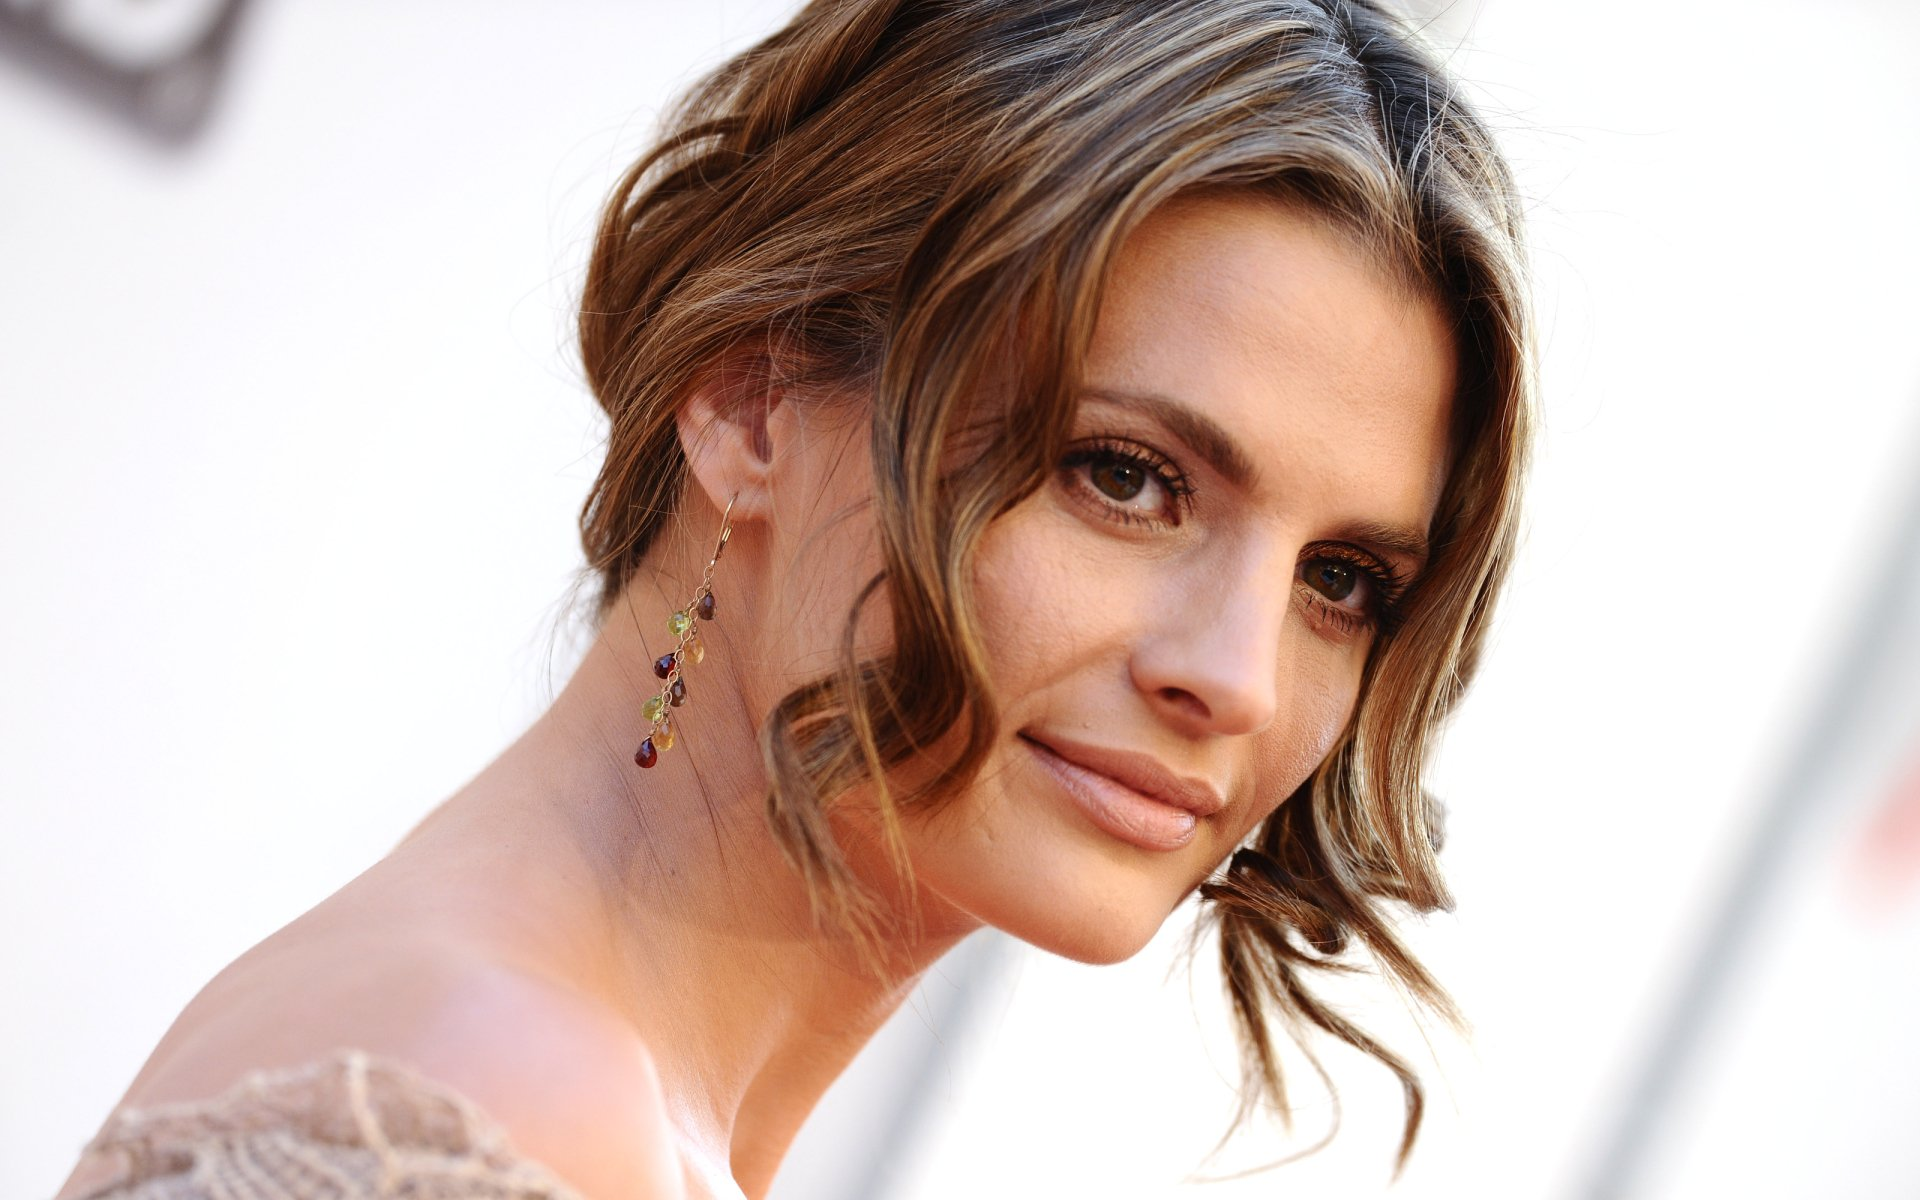 stana katic actress wallpaper - photo #21